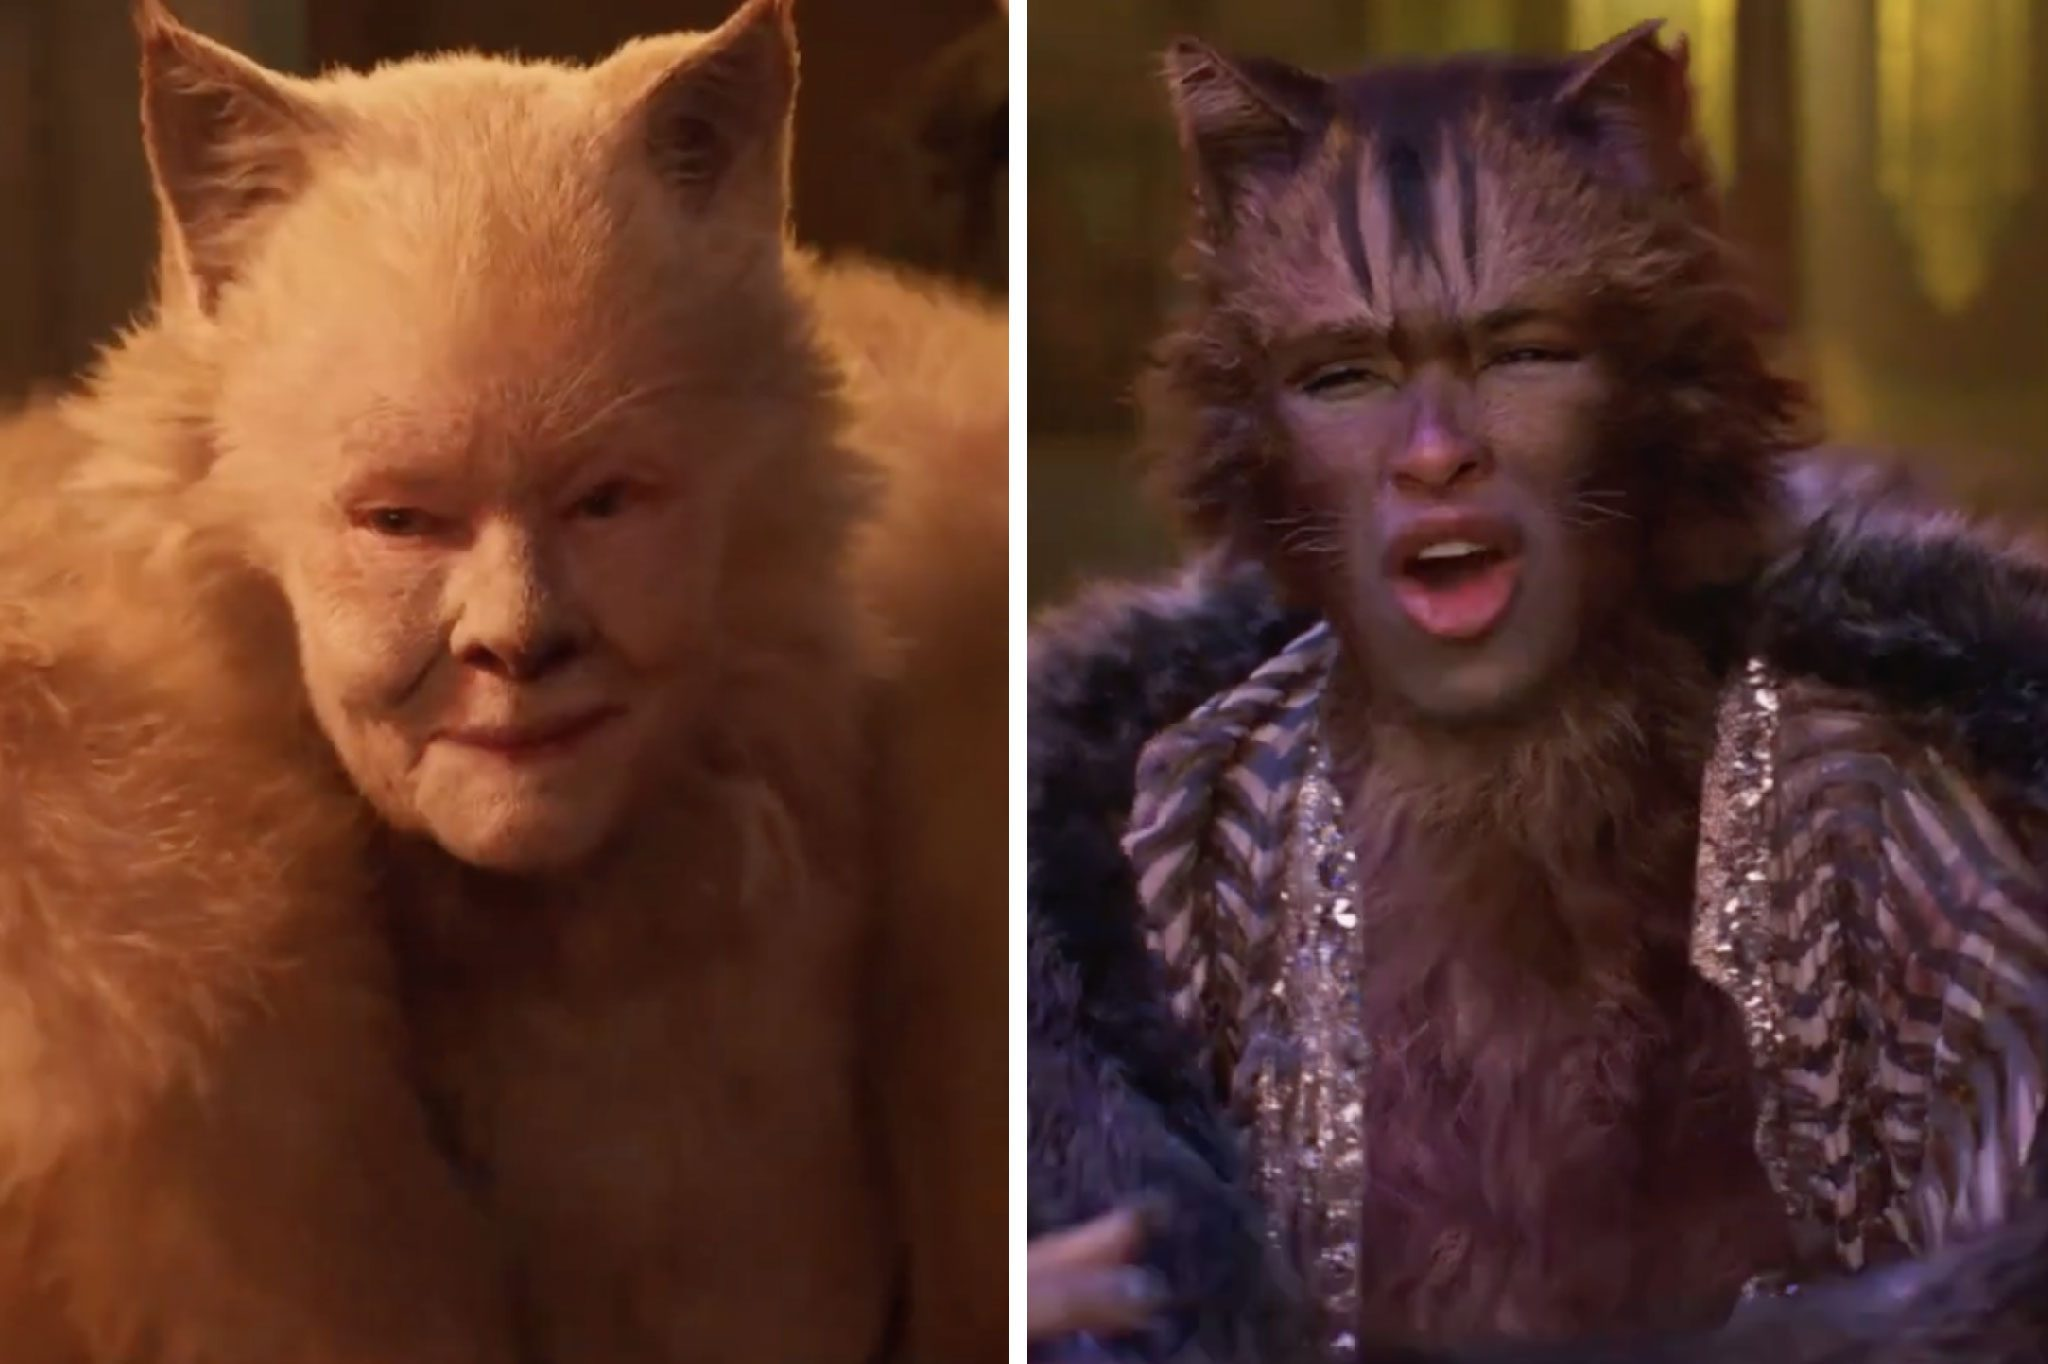 The Cats trailer starring Taylor Swift left us with so many